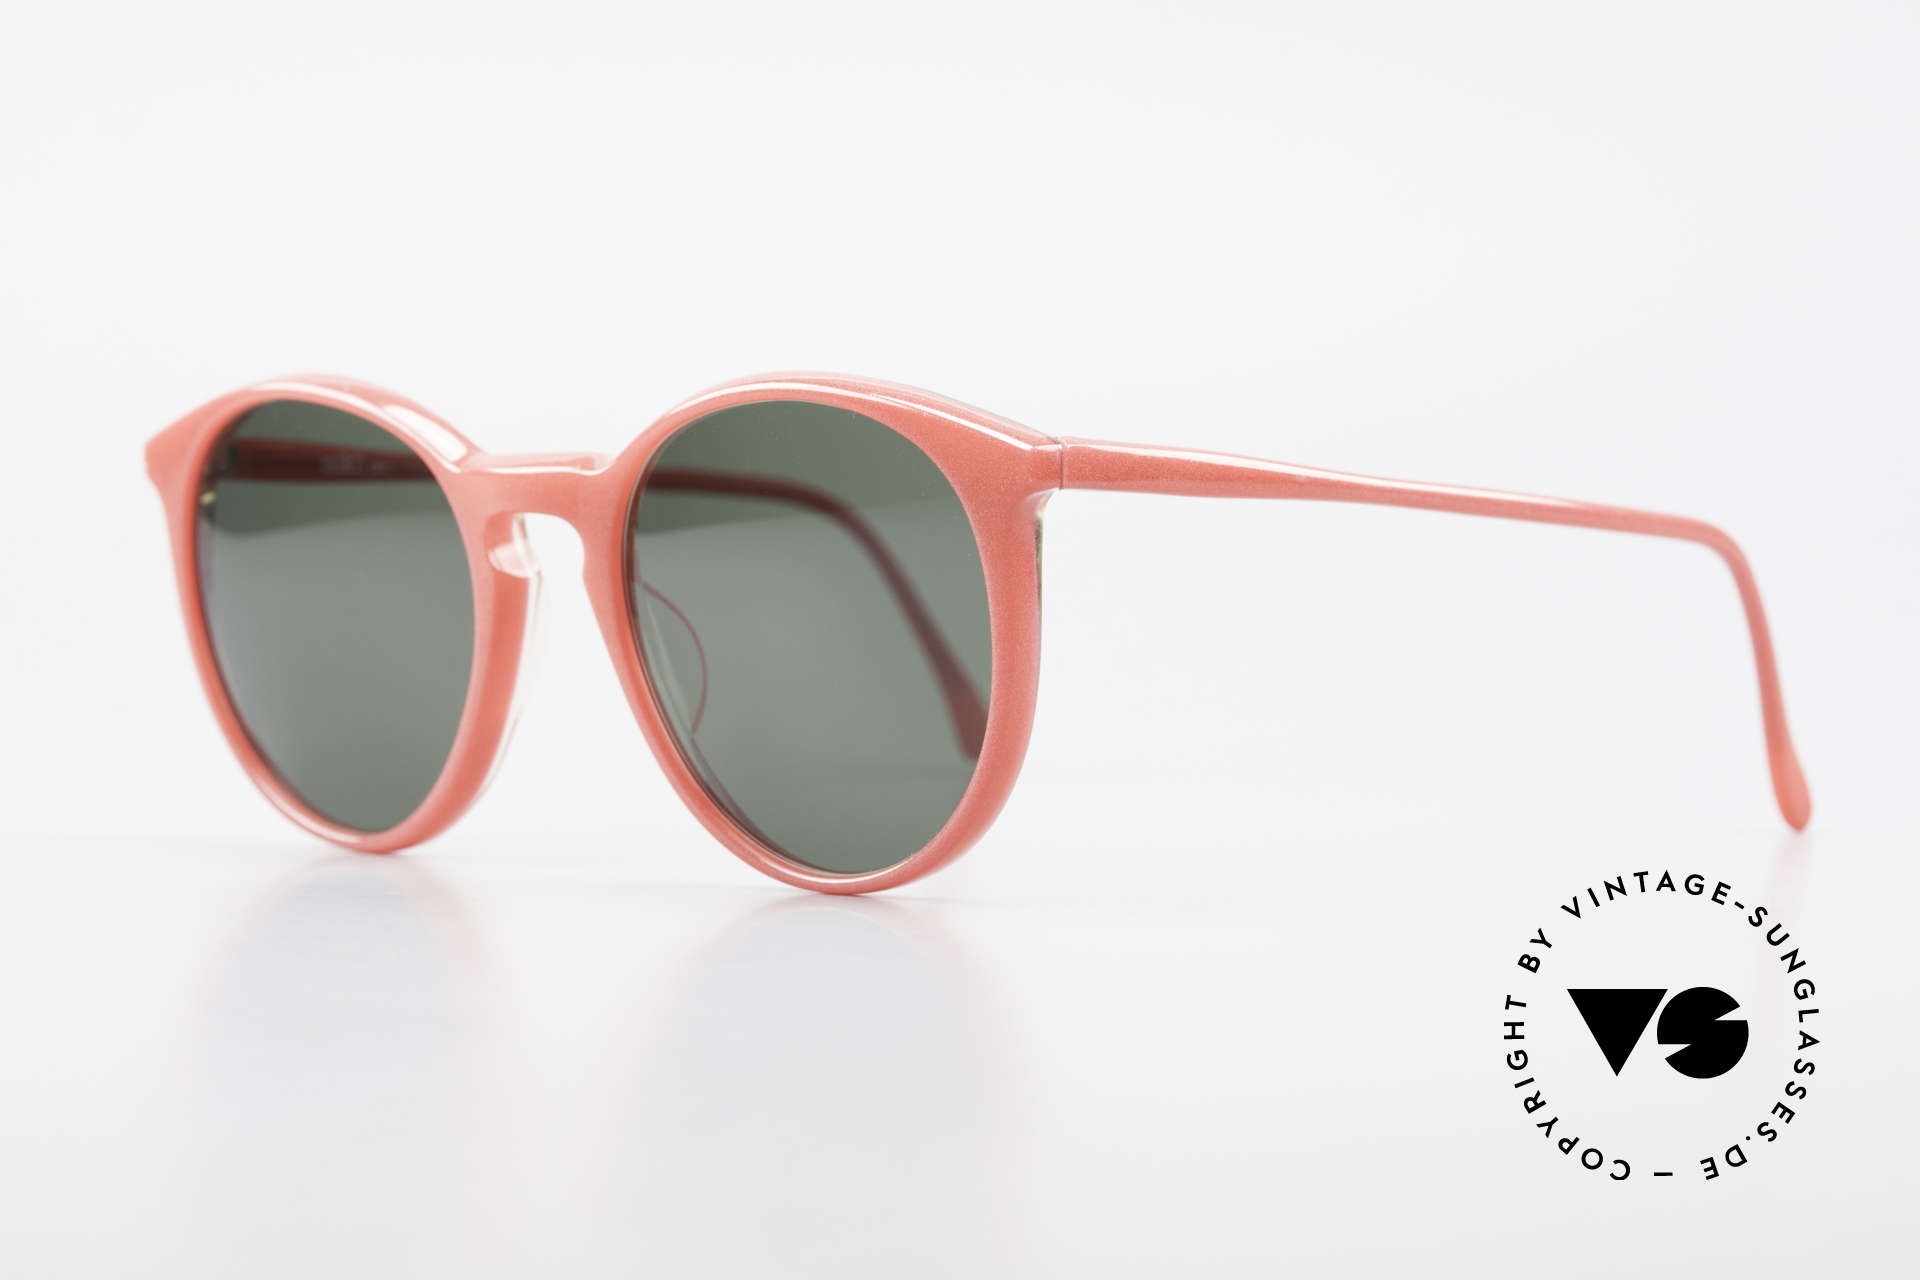 Alain Mikli 901 / 086 Red Pearl Panto Sunglasses, interesting frame color = shines like a red pearl, Made for Men and Women